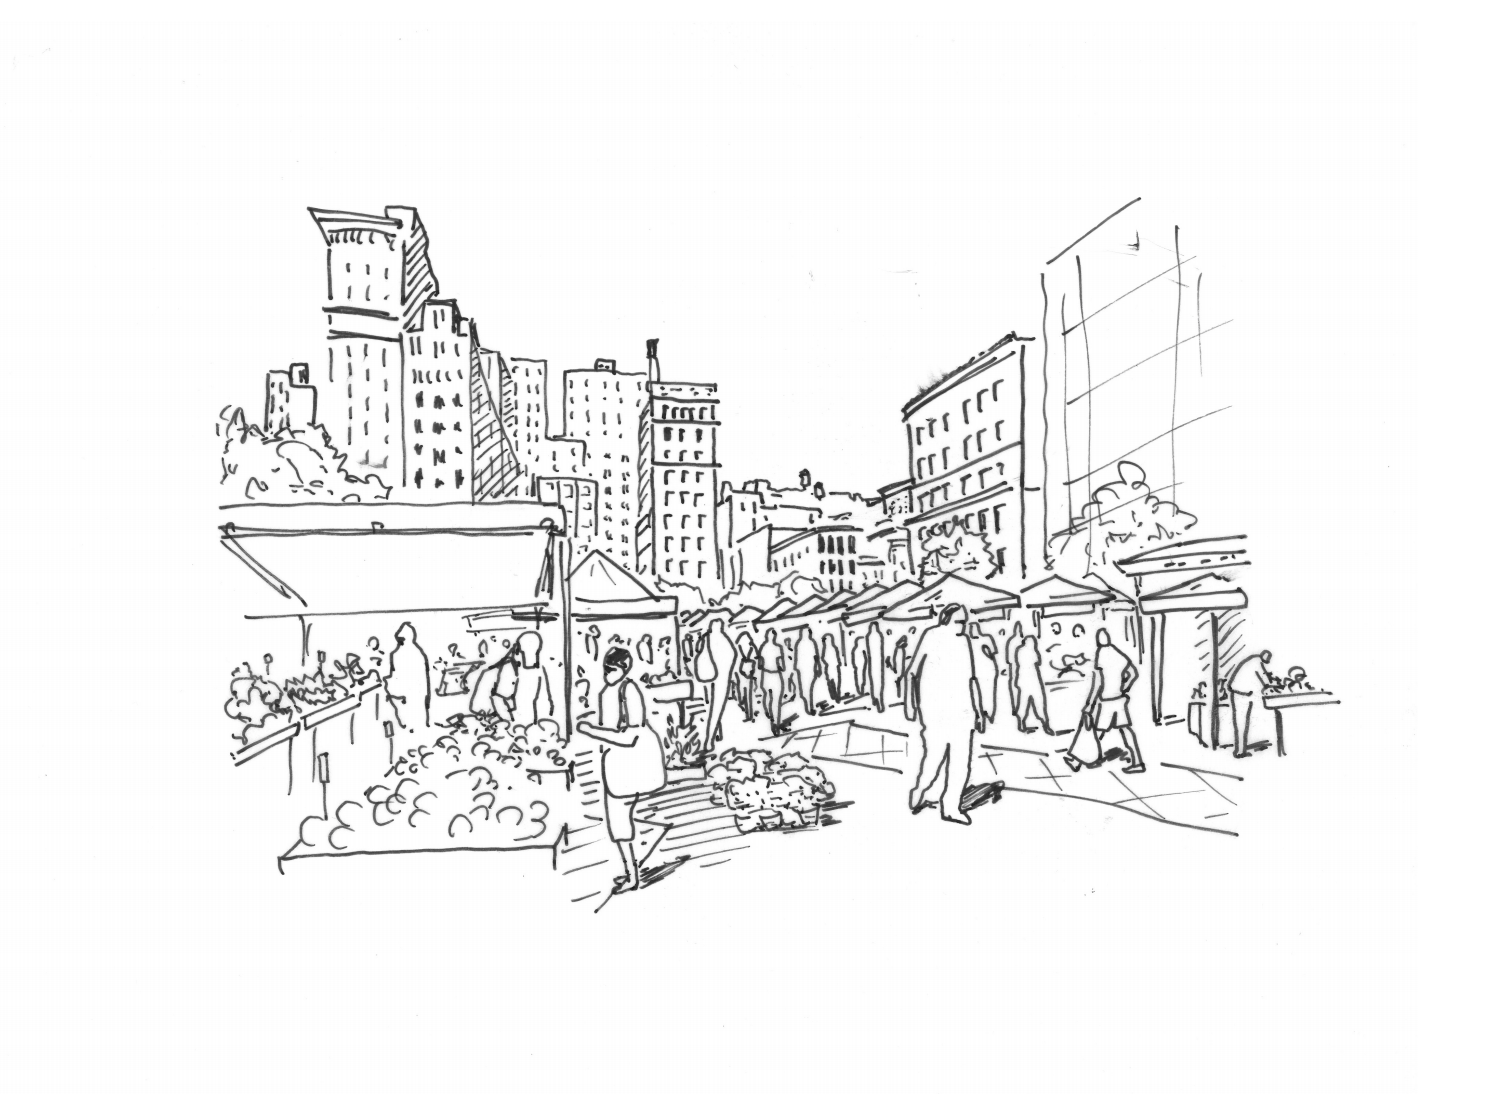 Union Square for Marvel Architects Proposal, 2019